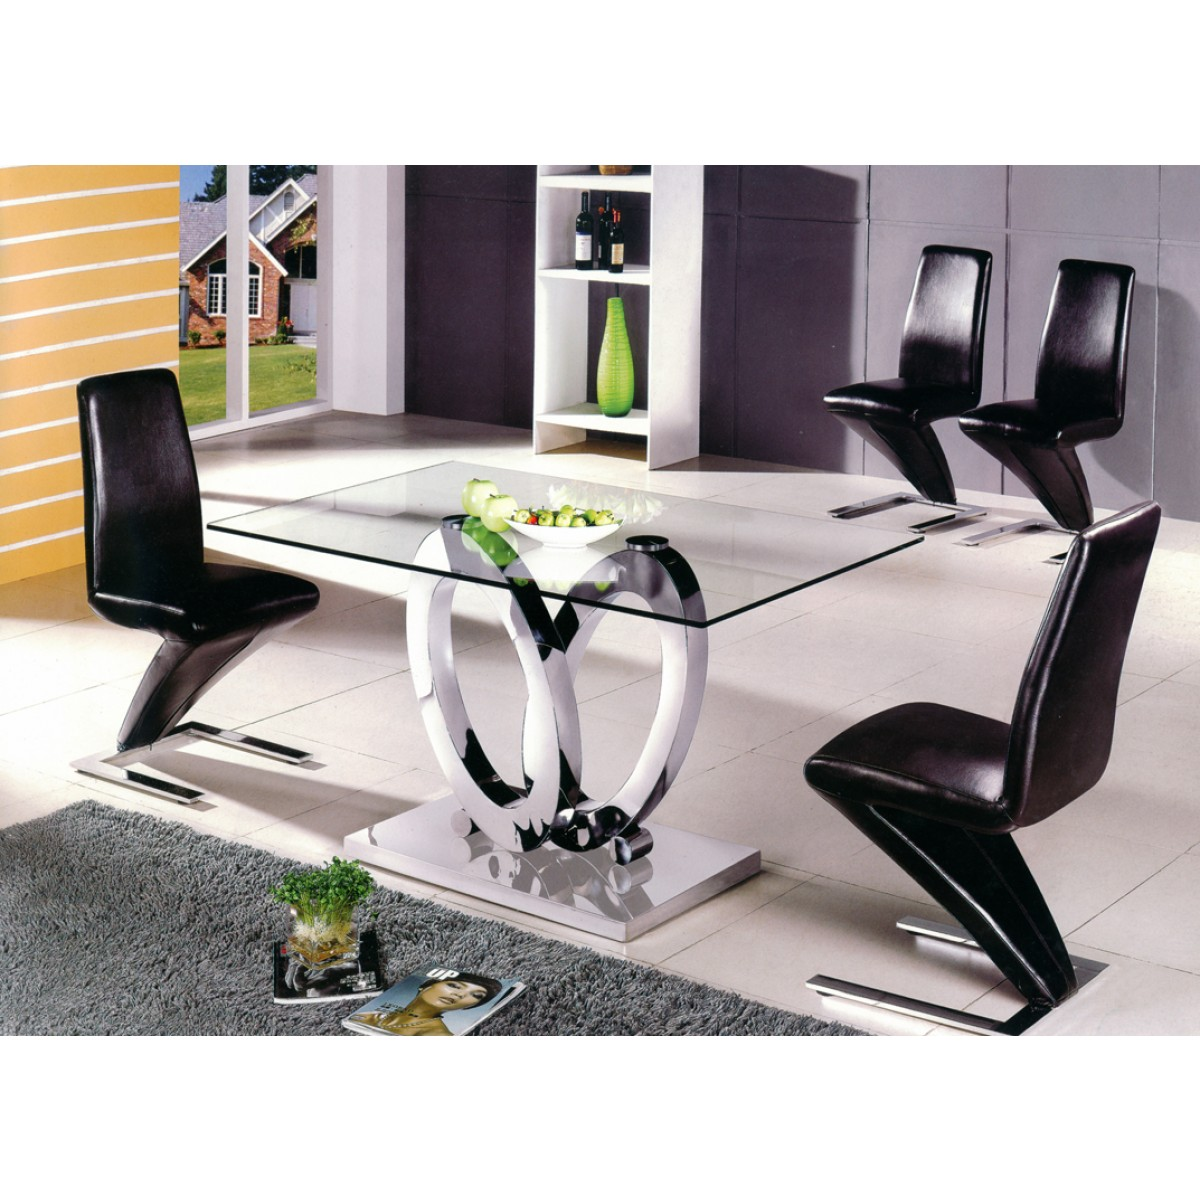 table manger design ellipse taille au choix tables de salle manger tables. Black Bedroom Furniture Sets. Home Design Ideas